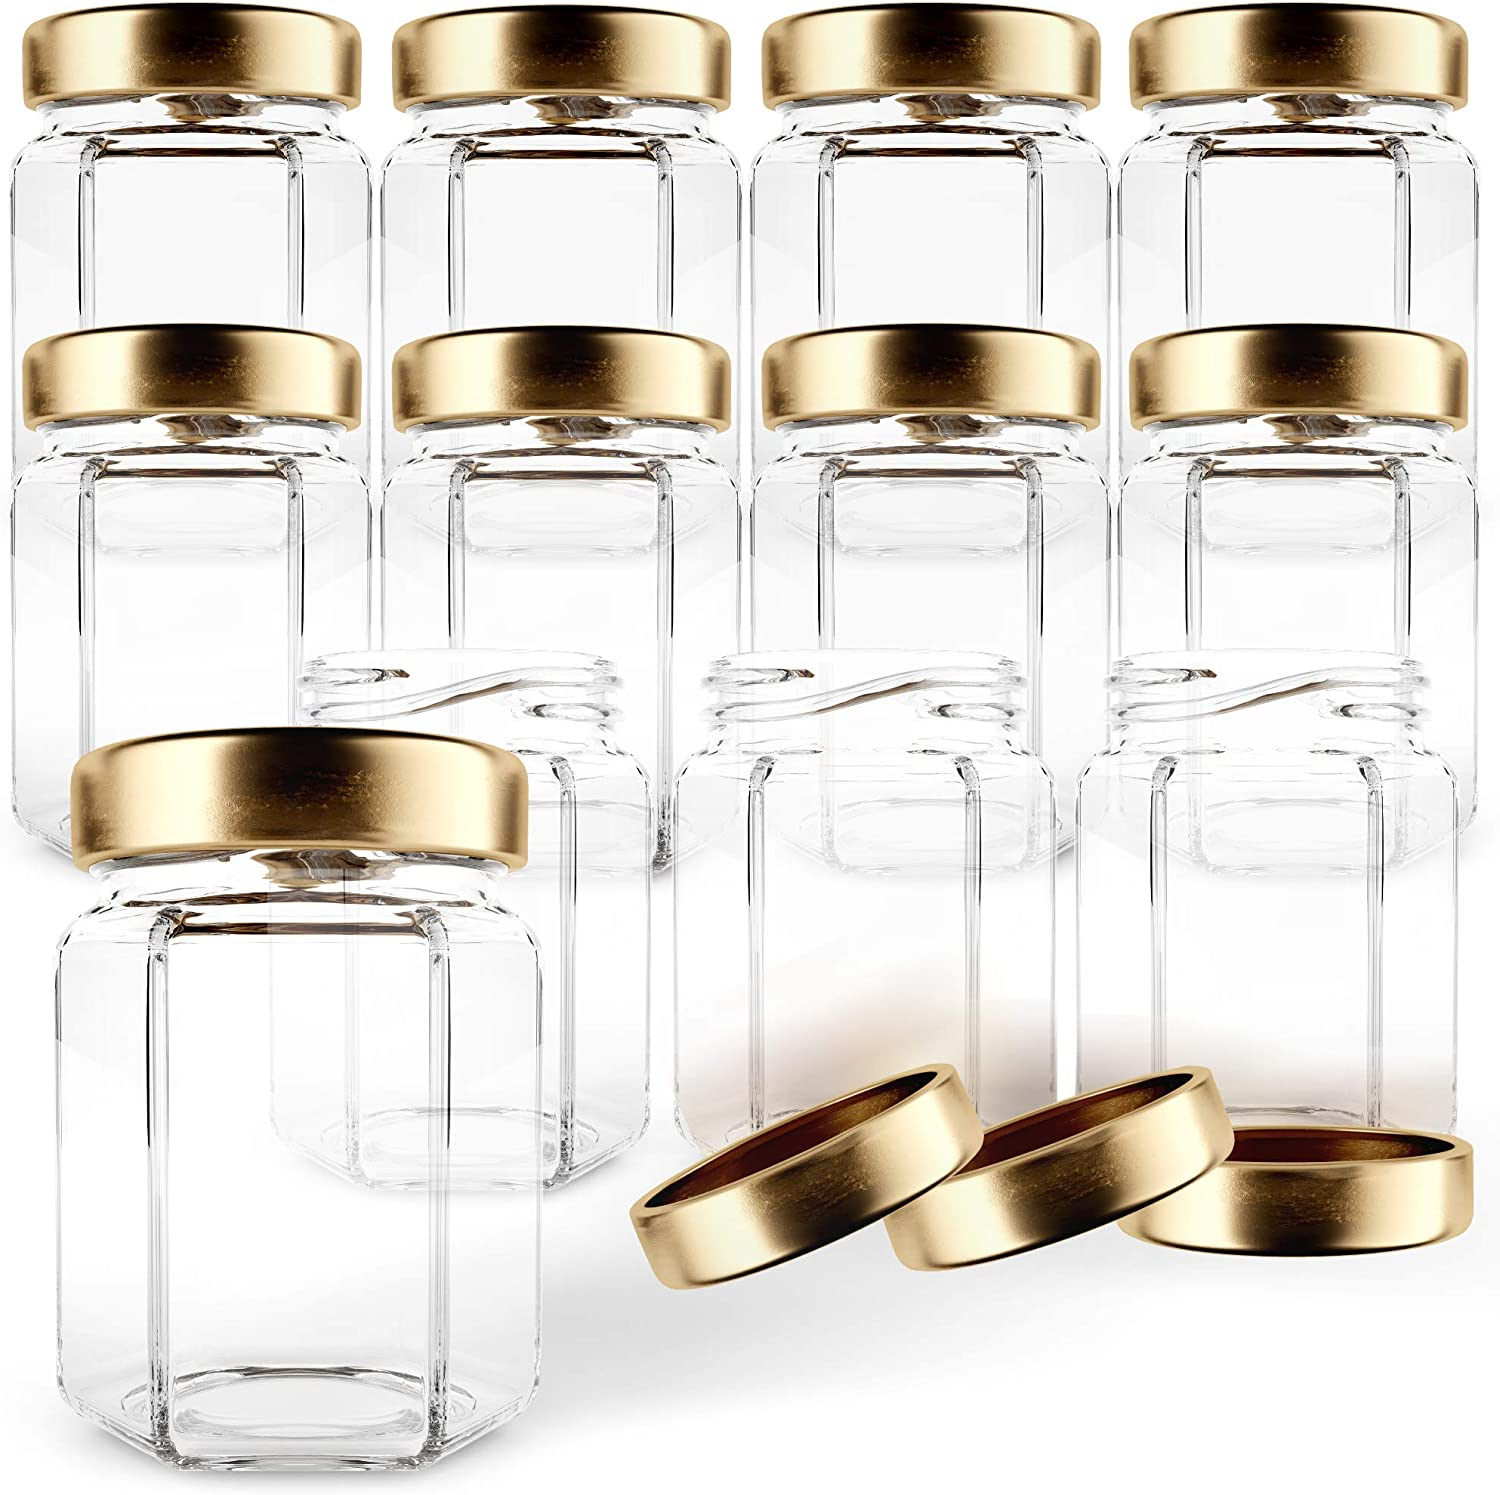 Gojars Hexagon Glass Jars 3oz Premium Food-grade. Mini Jars With Lids For Gifts, Wedding Favors, Honey, Jams And More. (12, 3oz)